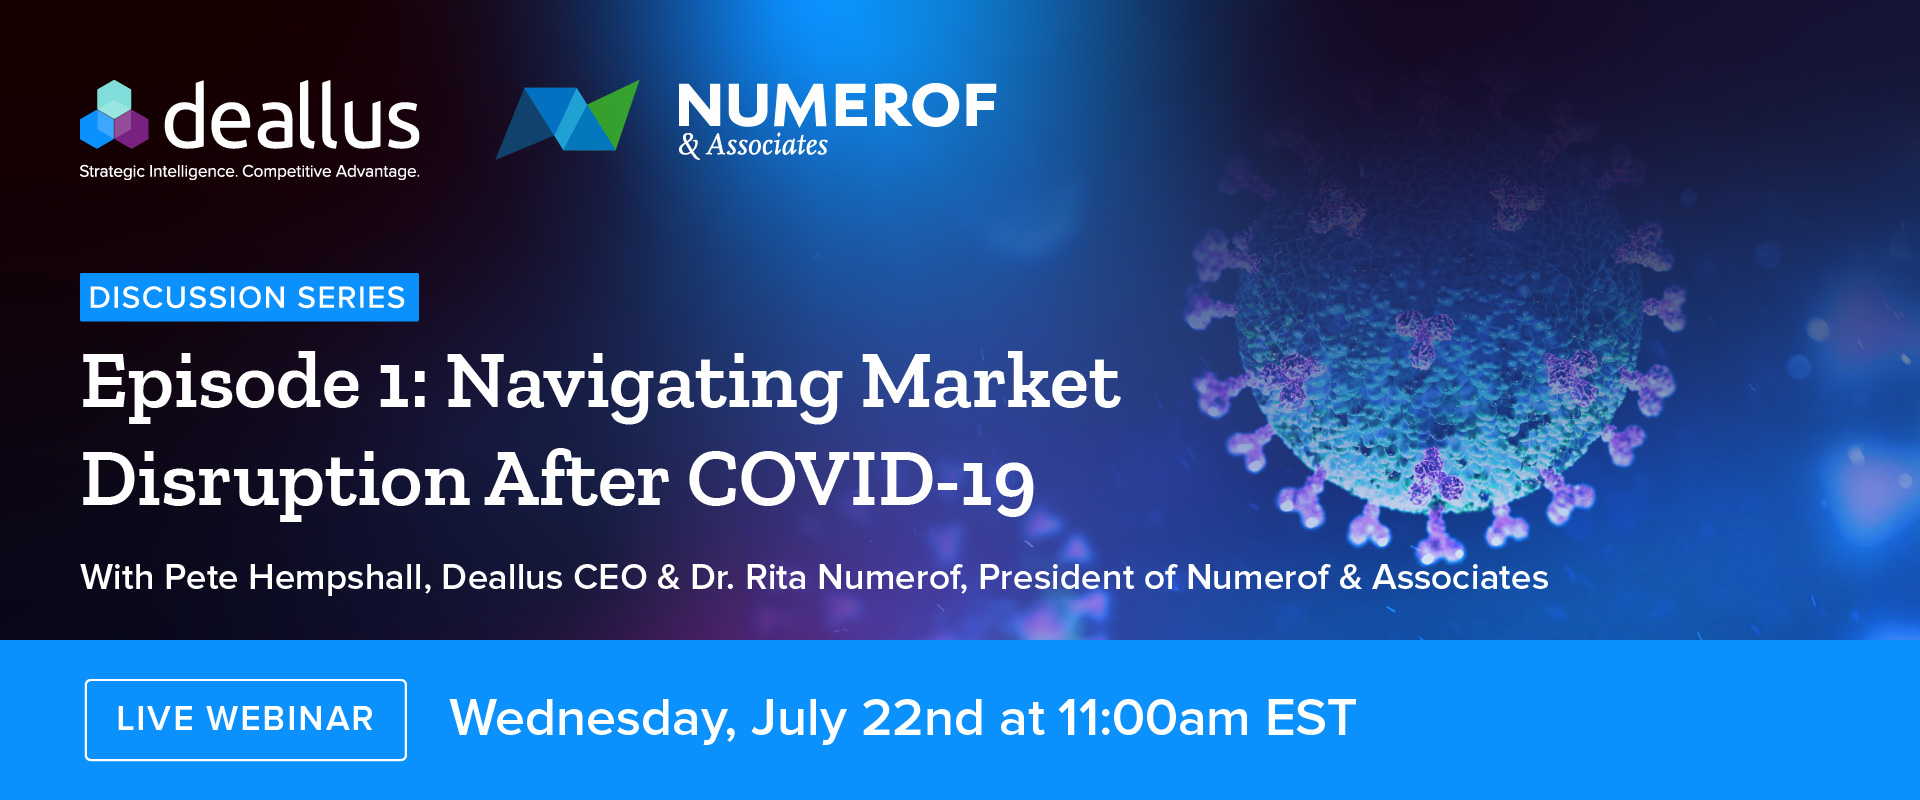 COVID-19 Live Webinar Deallus and Numerof Associates